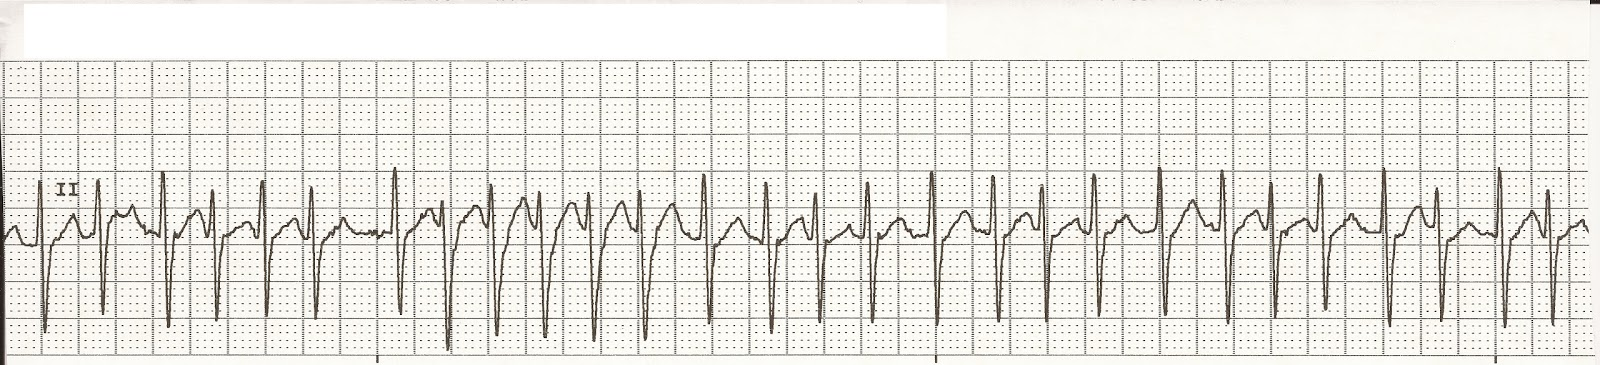 Acute Management of Atrial Fibrillation: Part I Rate and